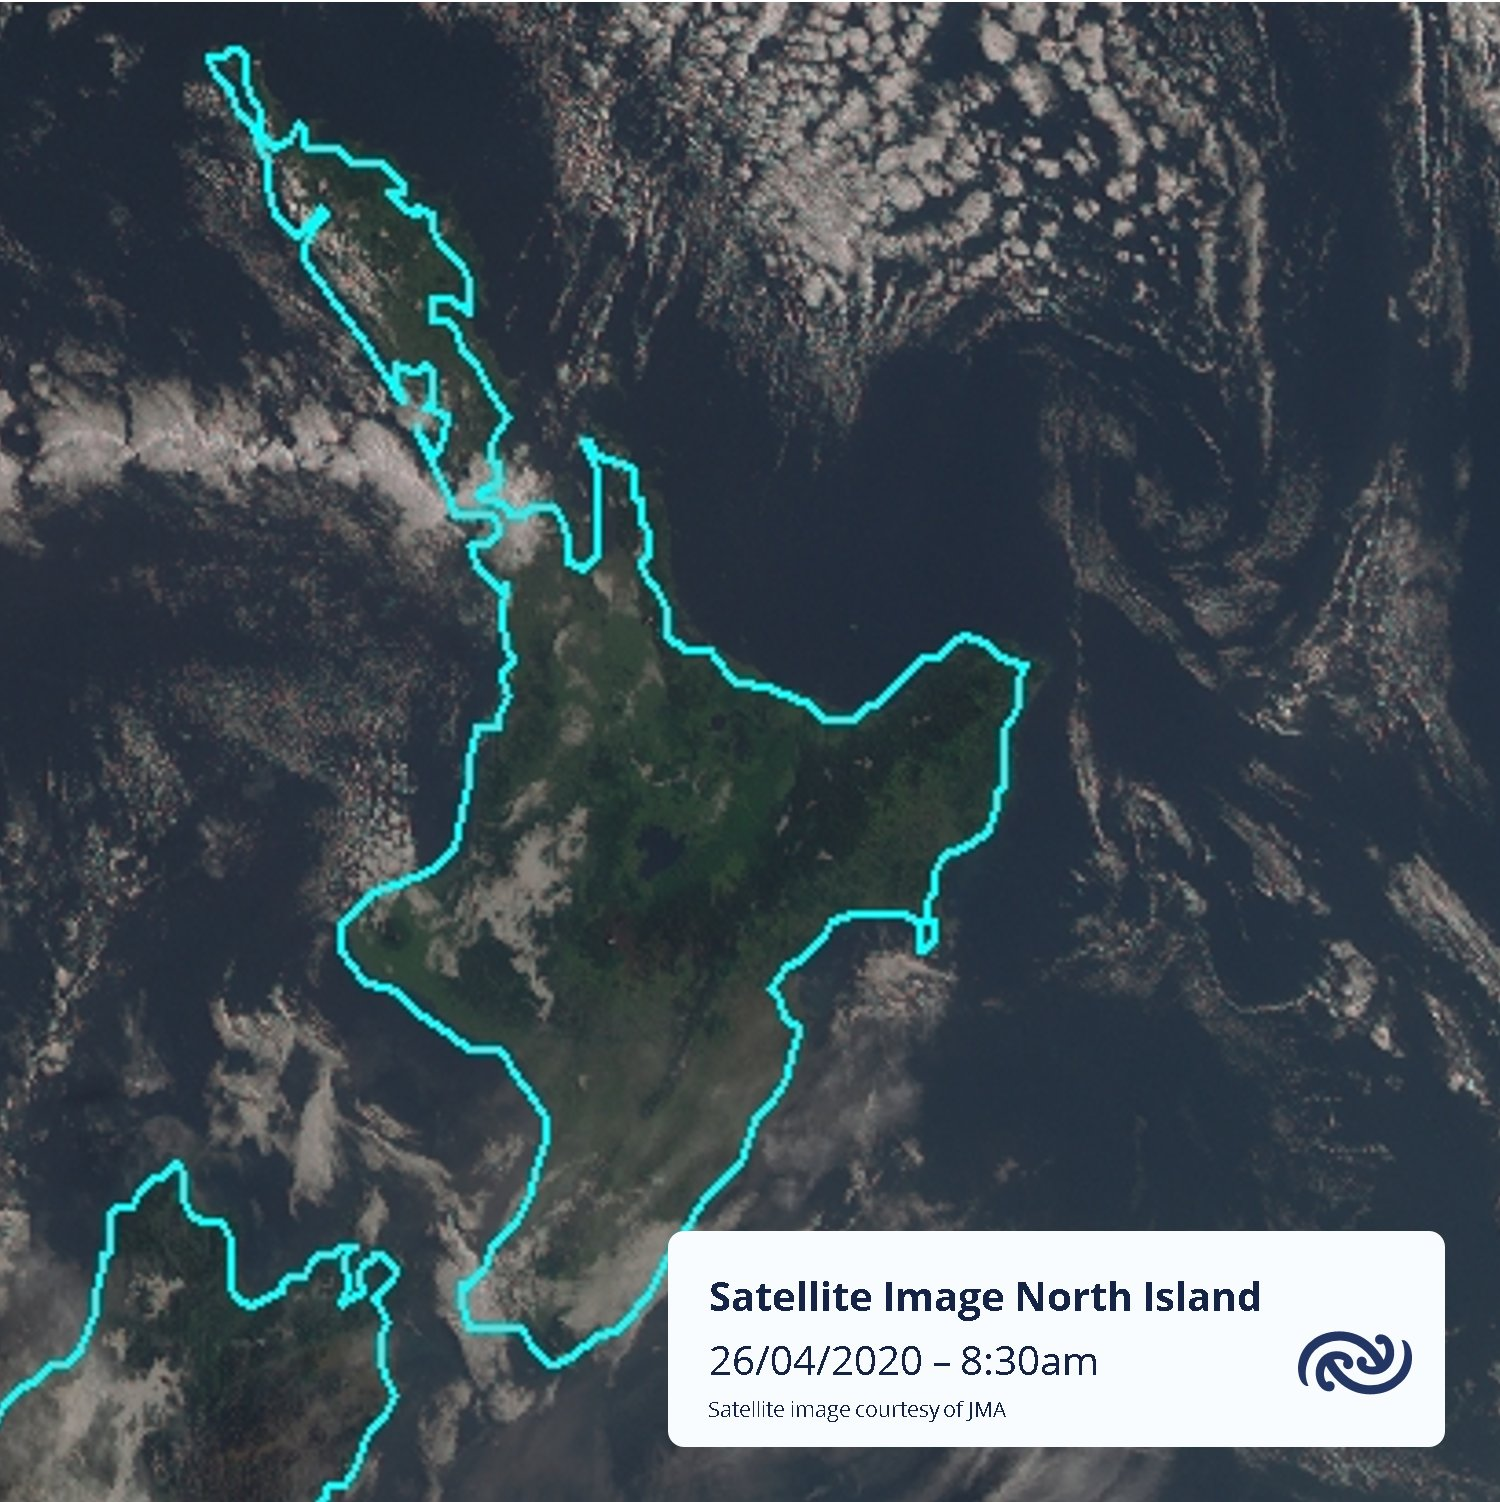 Morena   Looking sunny for much of the North Island today, though lucky areas in Auckland may see the odd morning shower, and Northland into early afternoon. A spot of drizzle for lower North Island before a fine afternoon. Full details at bit.ly/metservicenz ^MM https://t.co/LNxzTe7paY